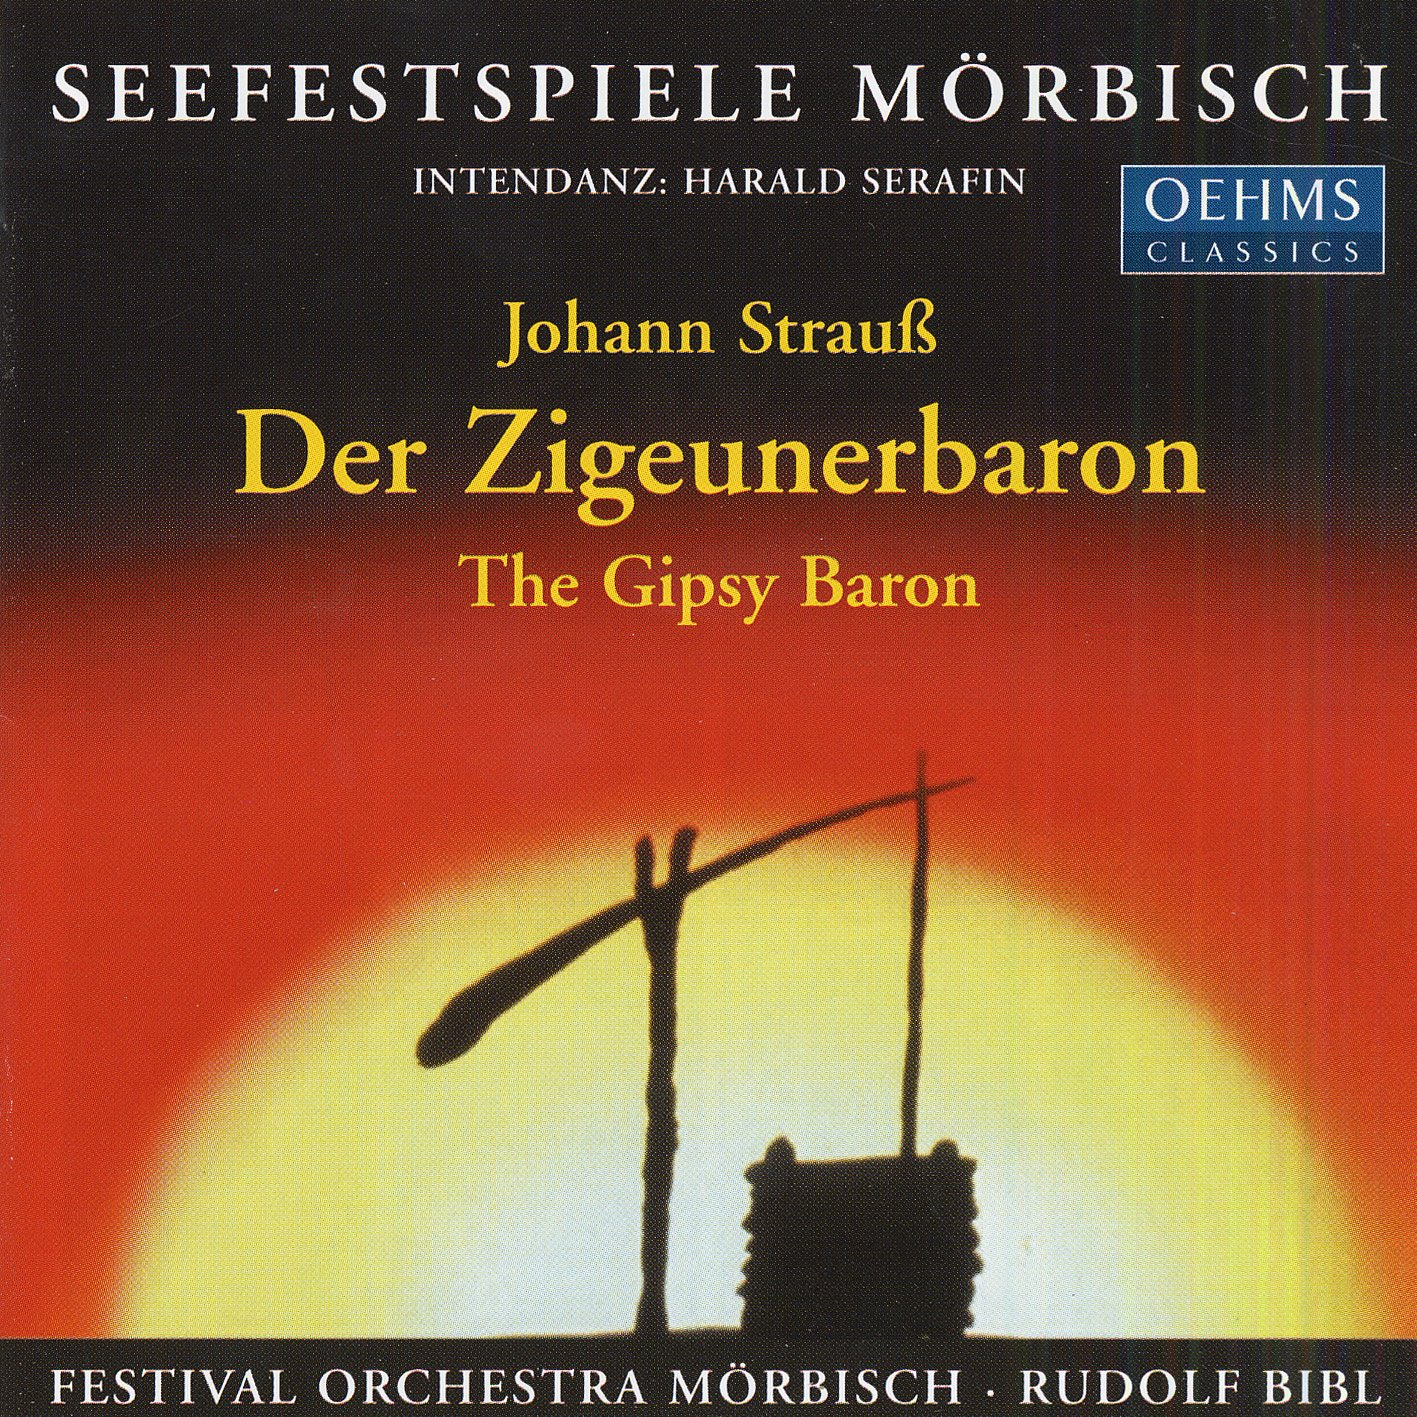 Der Zigeunerbaron: Gypsy Baron J. Strauss Morbisch Festival Naxos of America Inc. Recorded Music - Classical Classical - General Classical Music Opera